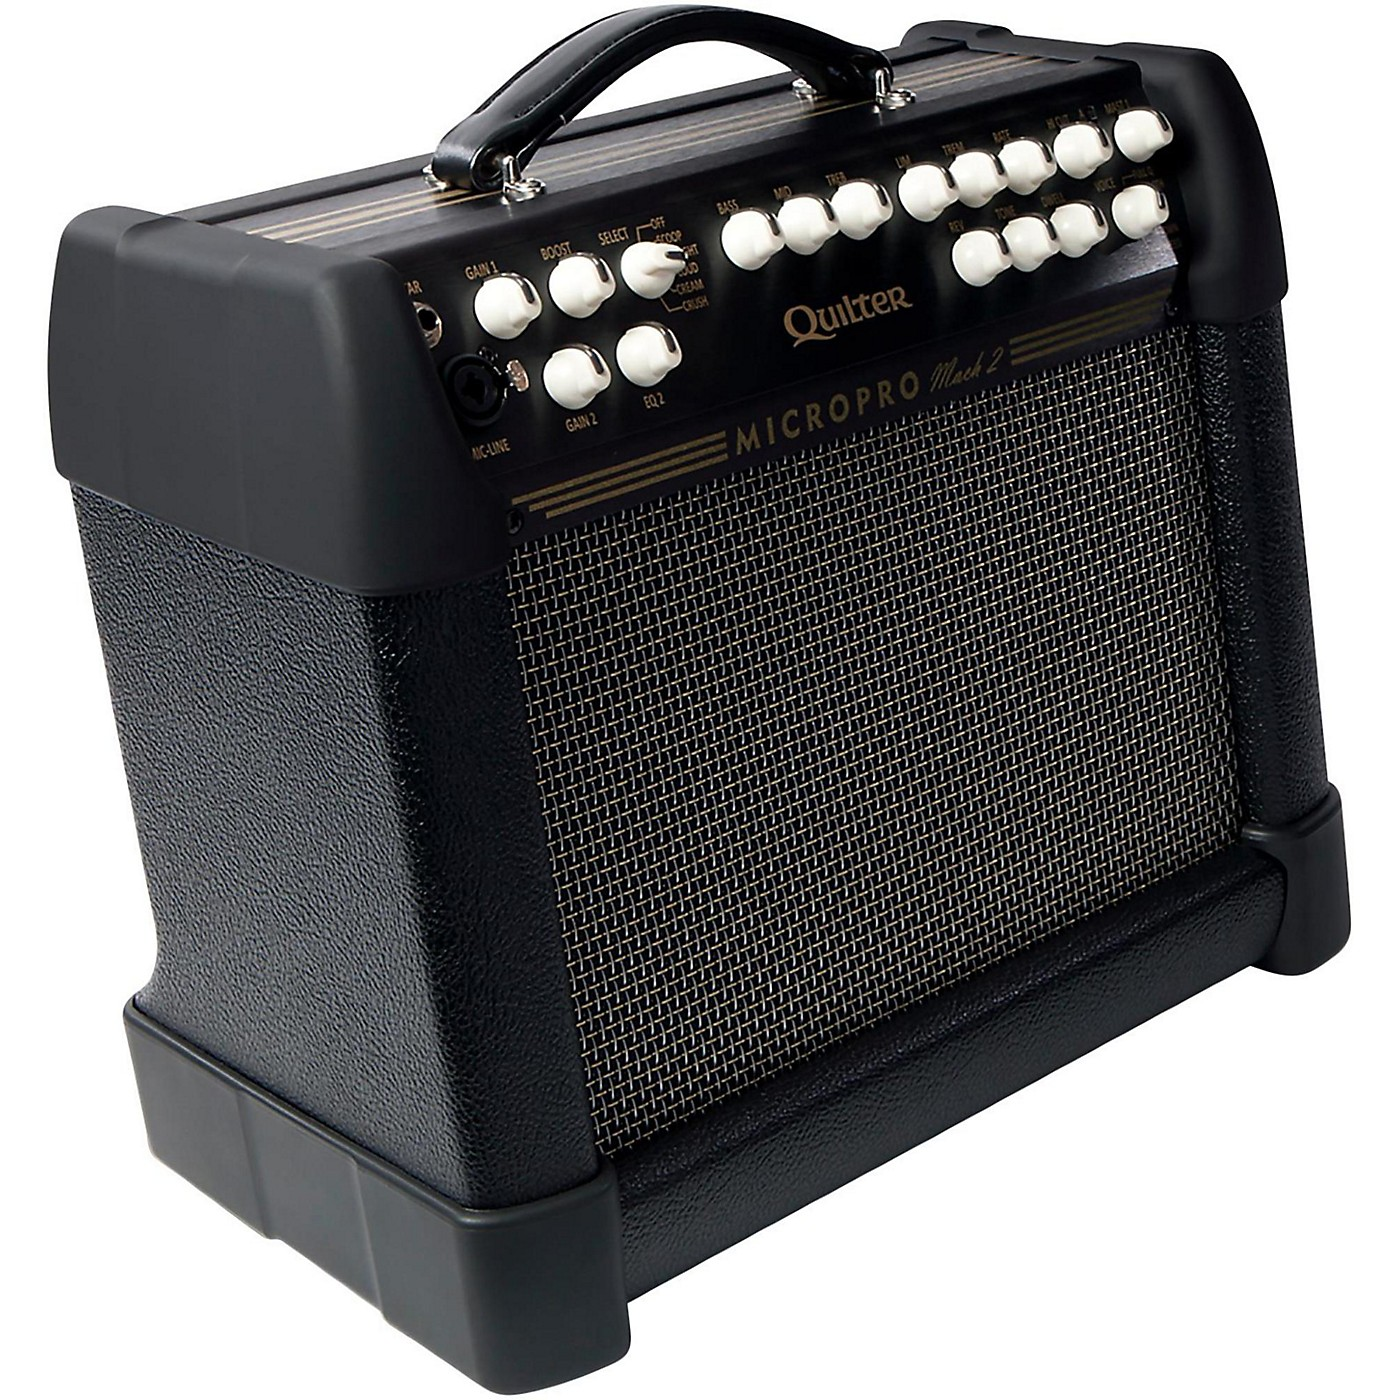 Quilter Labs Mach2-COMBO-8 Micro Pro 200 Mach 2 200W 1x8 Guitar Combo Amp thumbnail